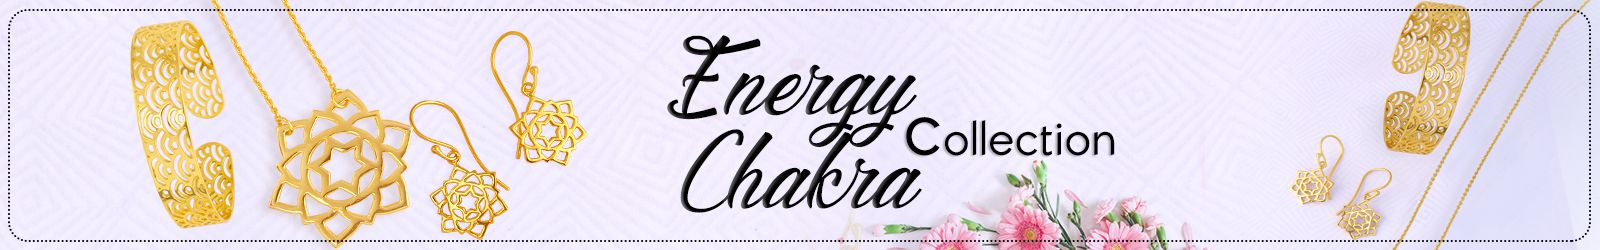 Wholesale Energy Chakra Jewelry Maker in Jaipur